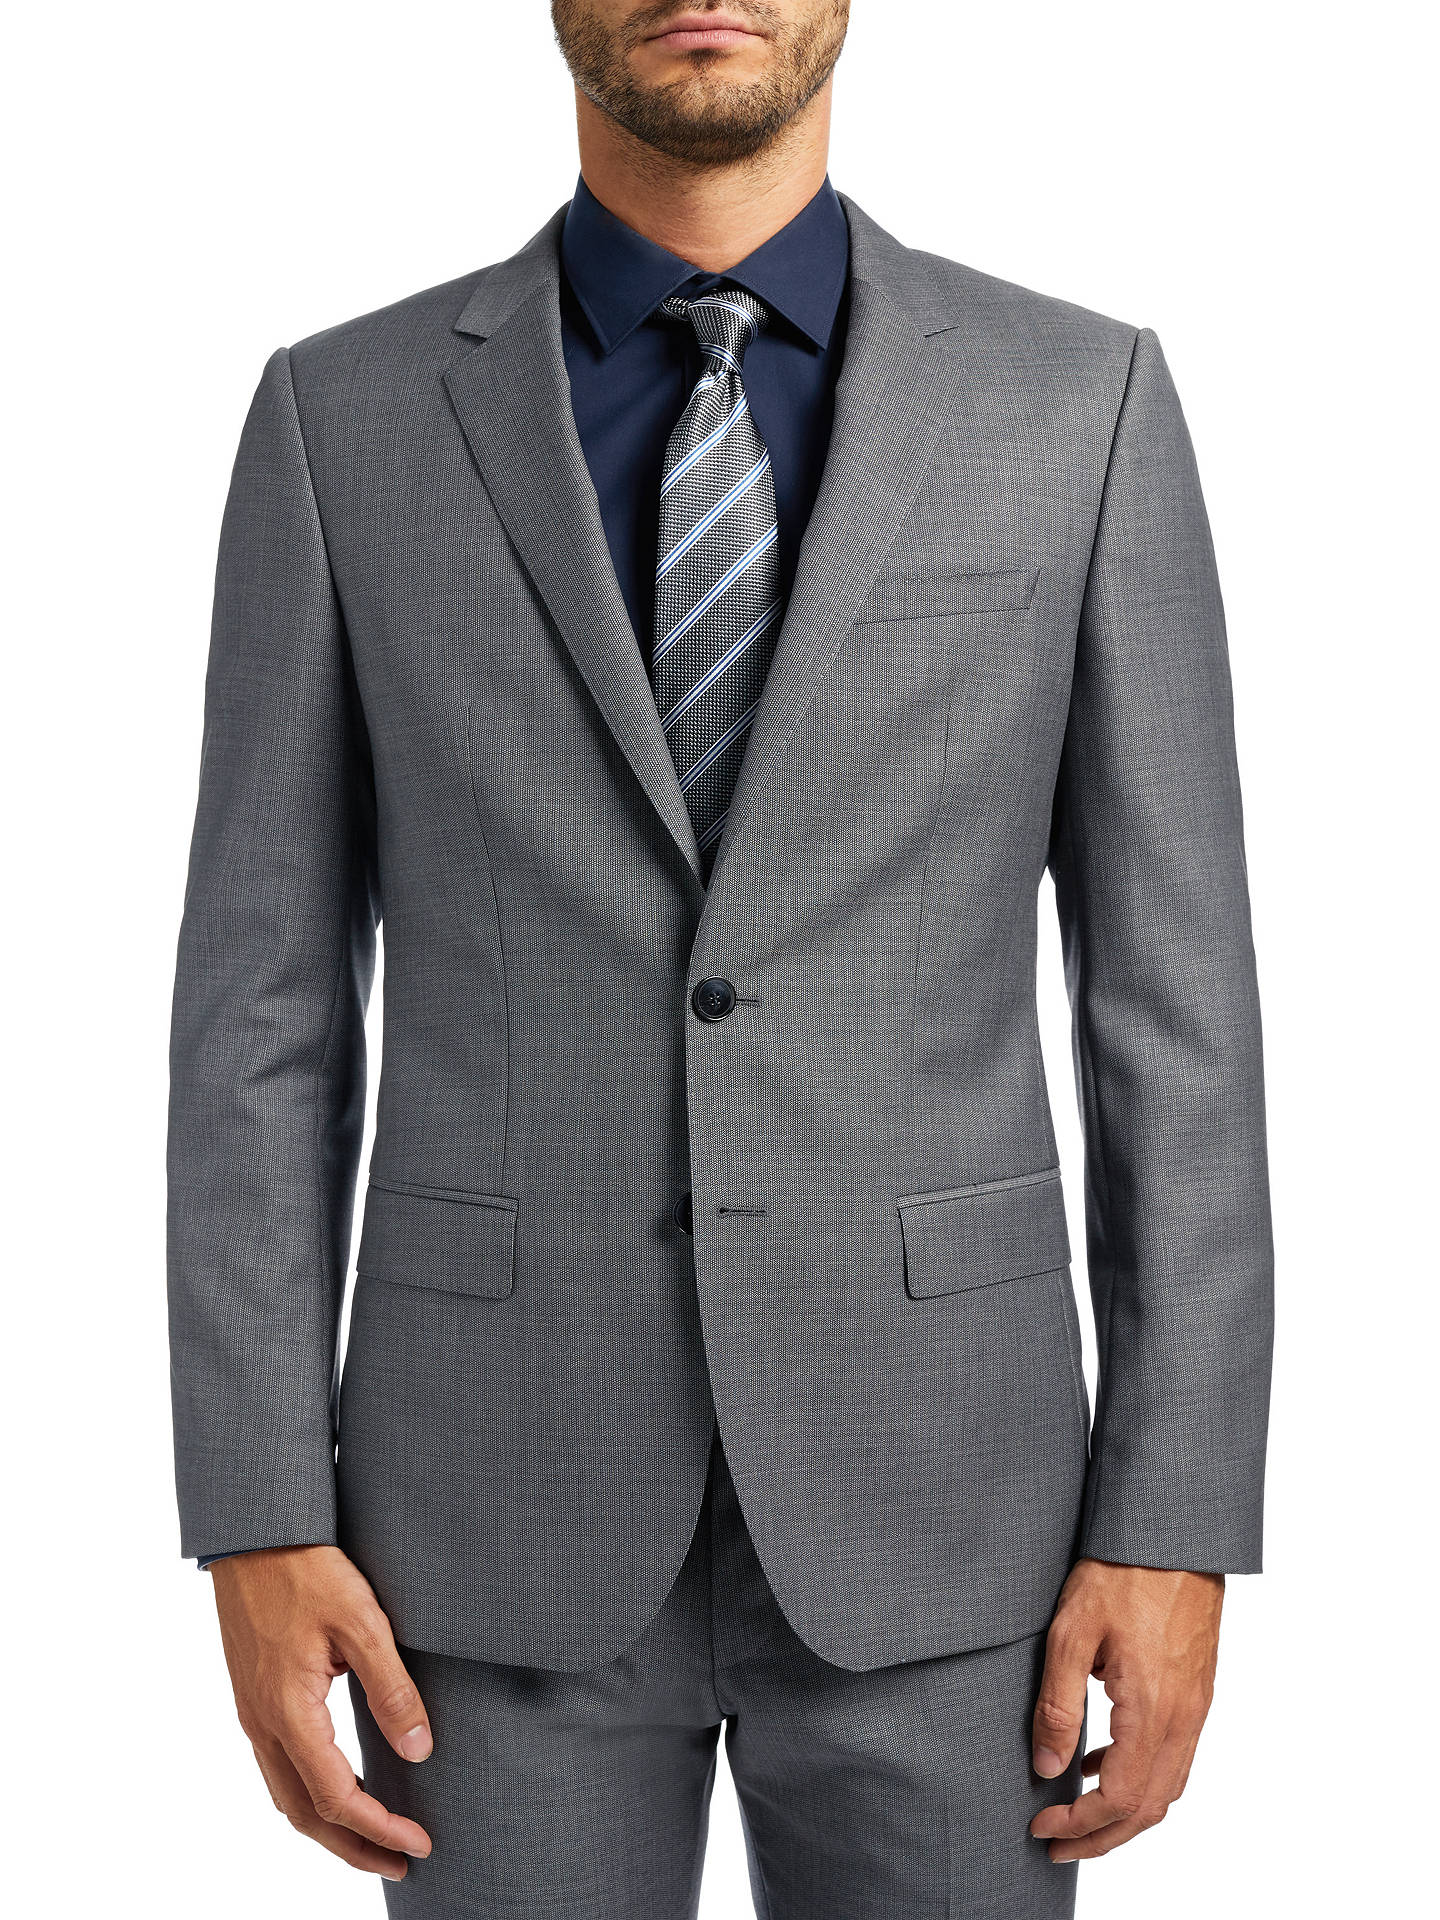 798a5ffa0 HUGO by Hugo Boss C-Huge Slim Fit Suit Jacket, Open Grey at John ...